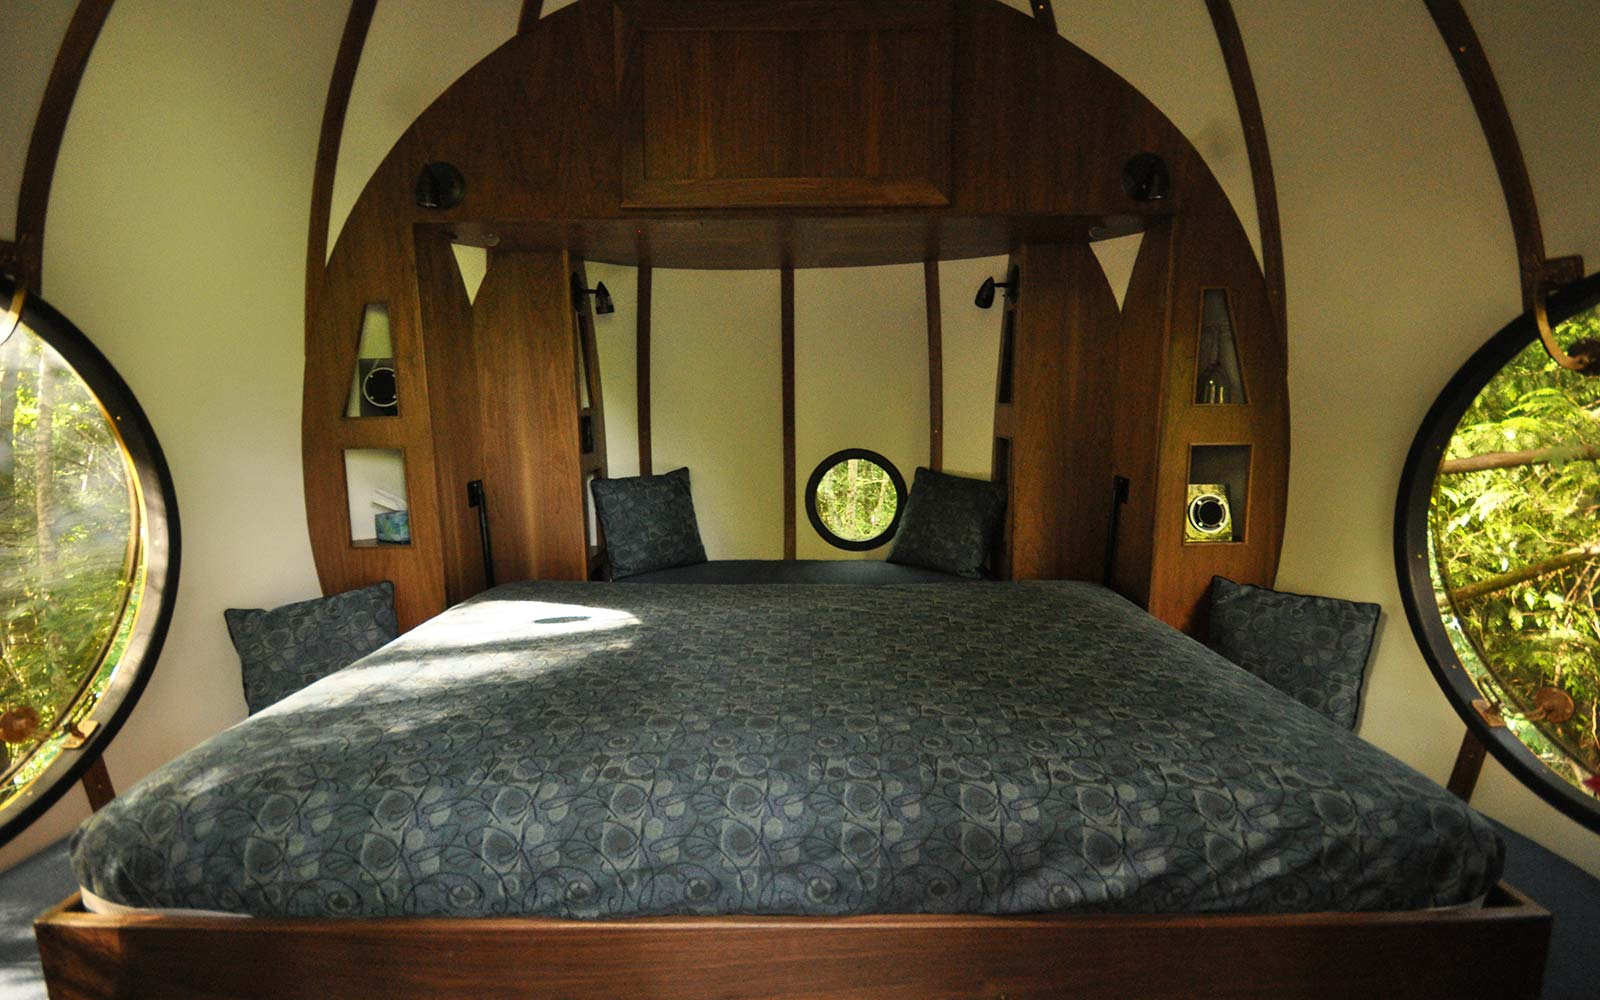 Free Spirit Spheres Suspension Vancouver Island Canada Forest Lodging Hotel Accommodation